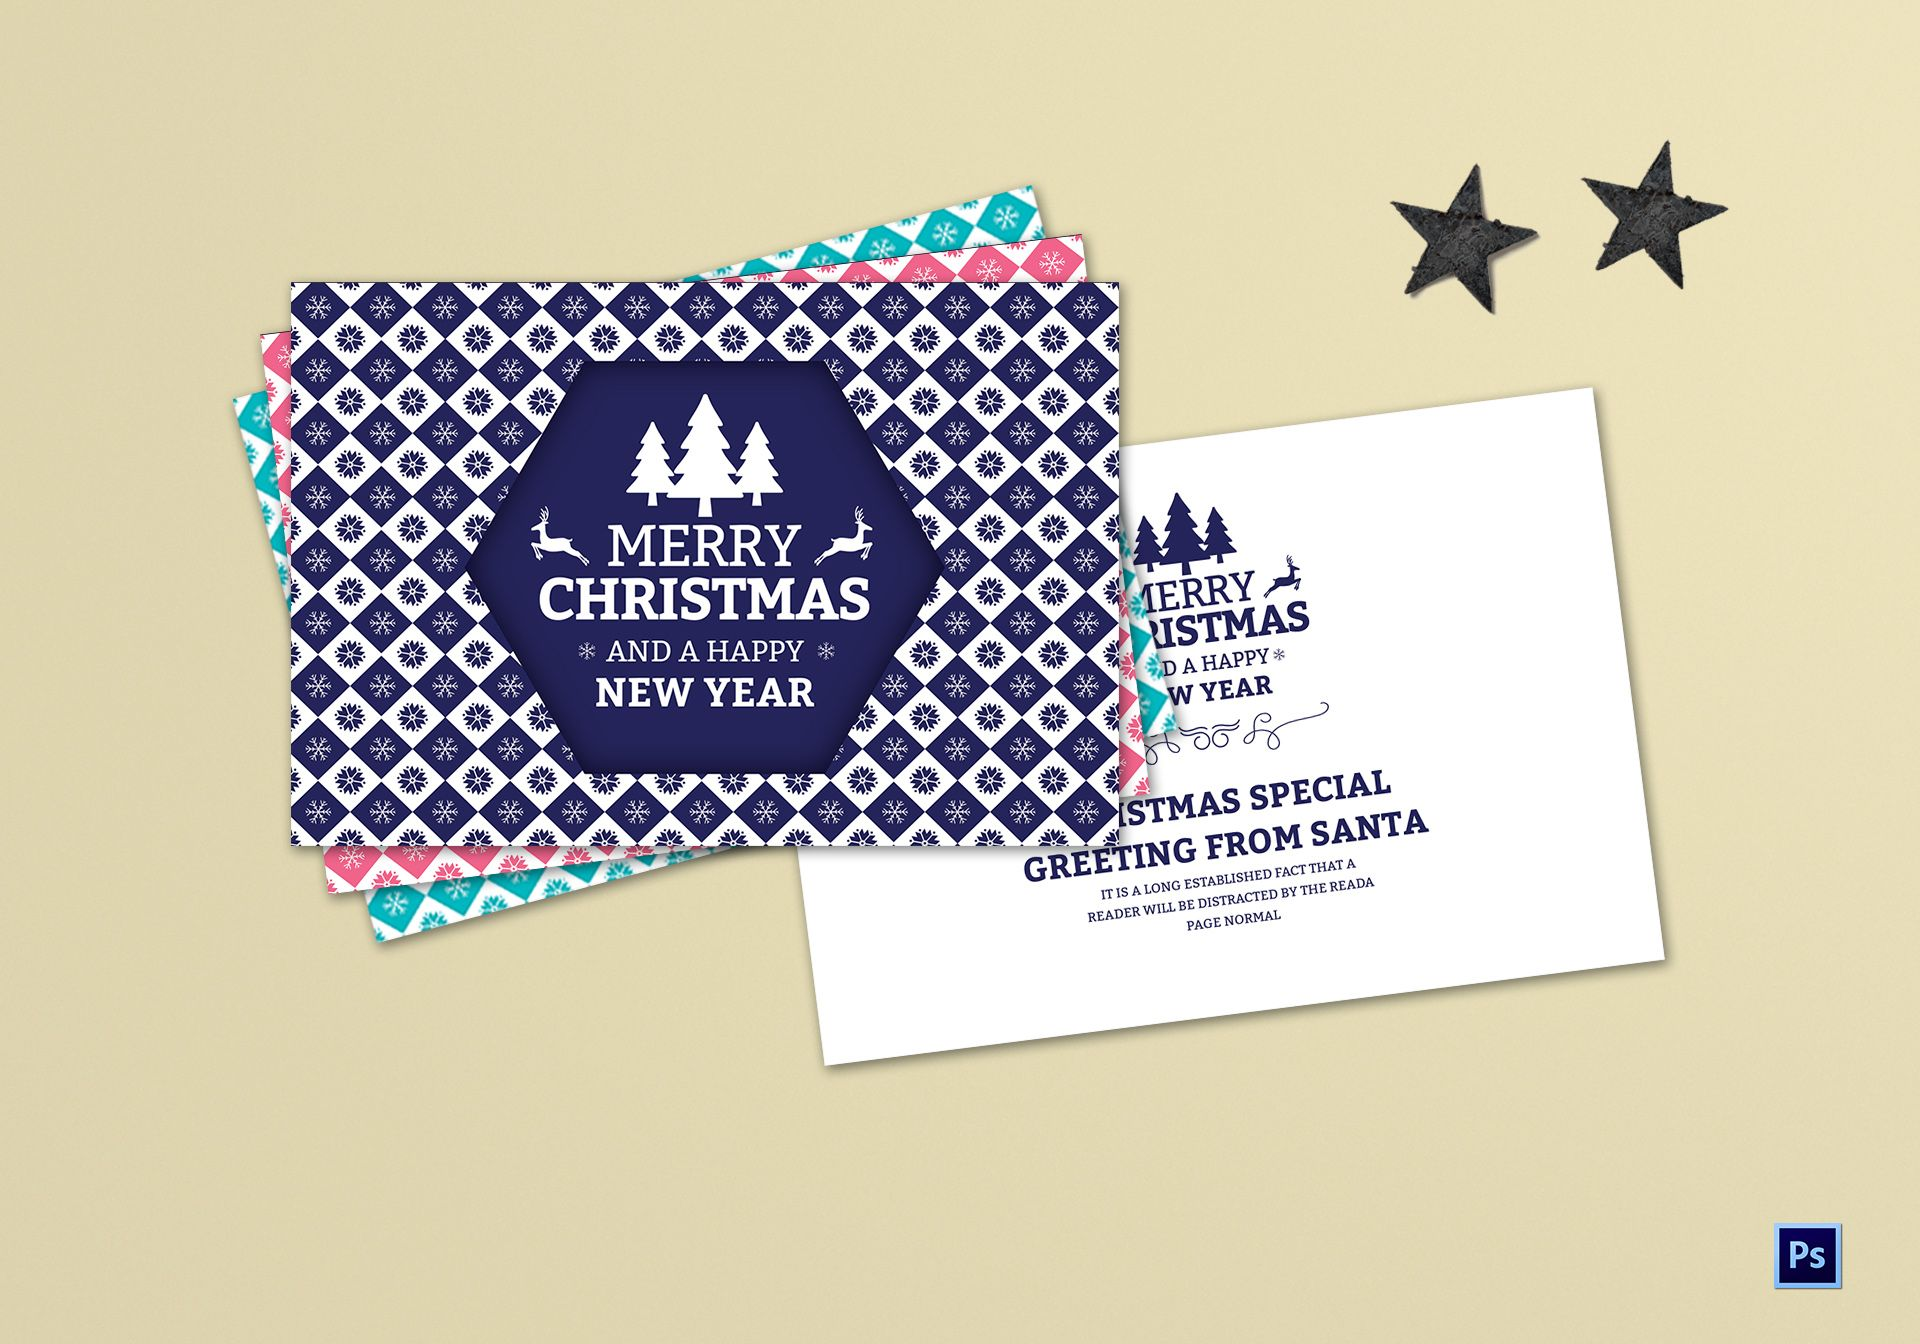 Editable Christmas Greeting Card Template In Adobe Photoshop